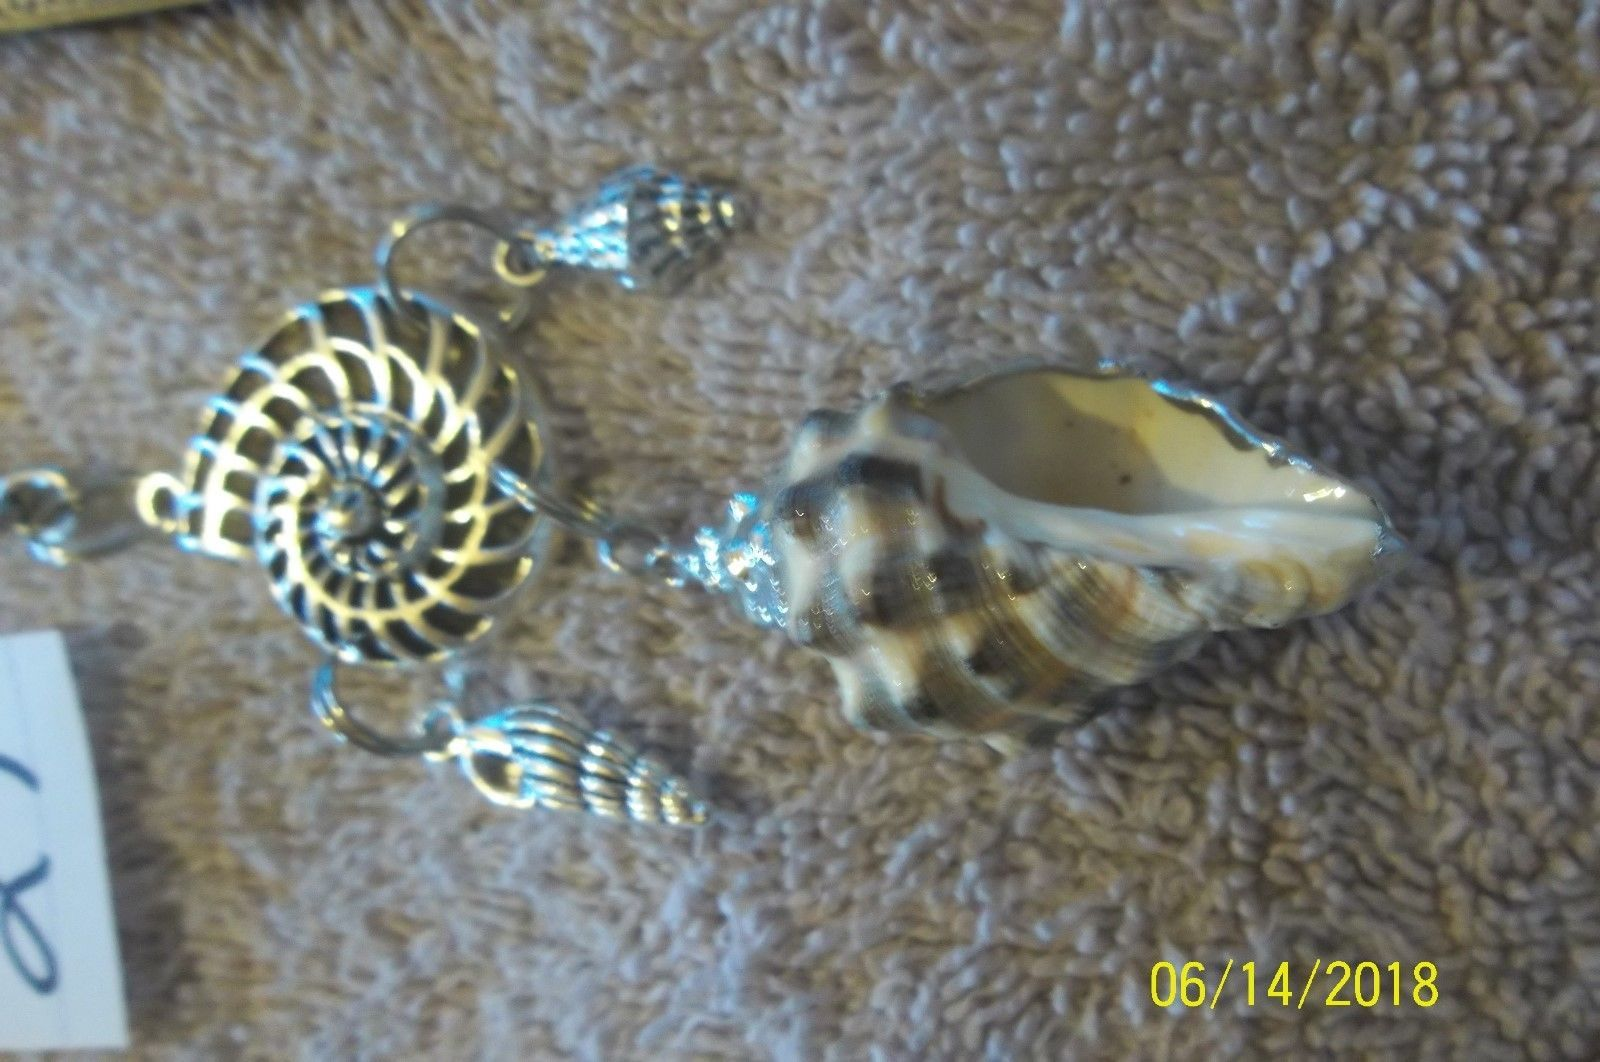 # purse jewelry silver color  shell keychain backpack filigree dangle charm #27